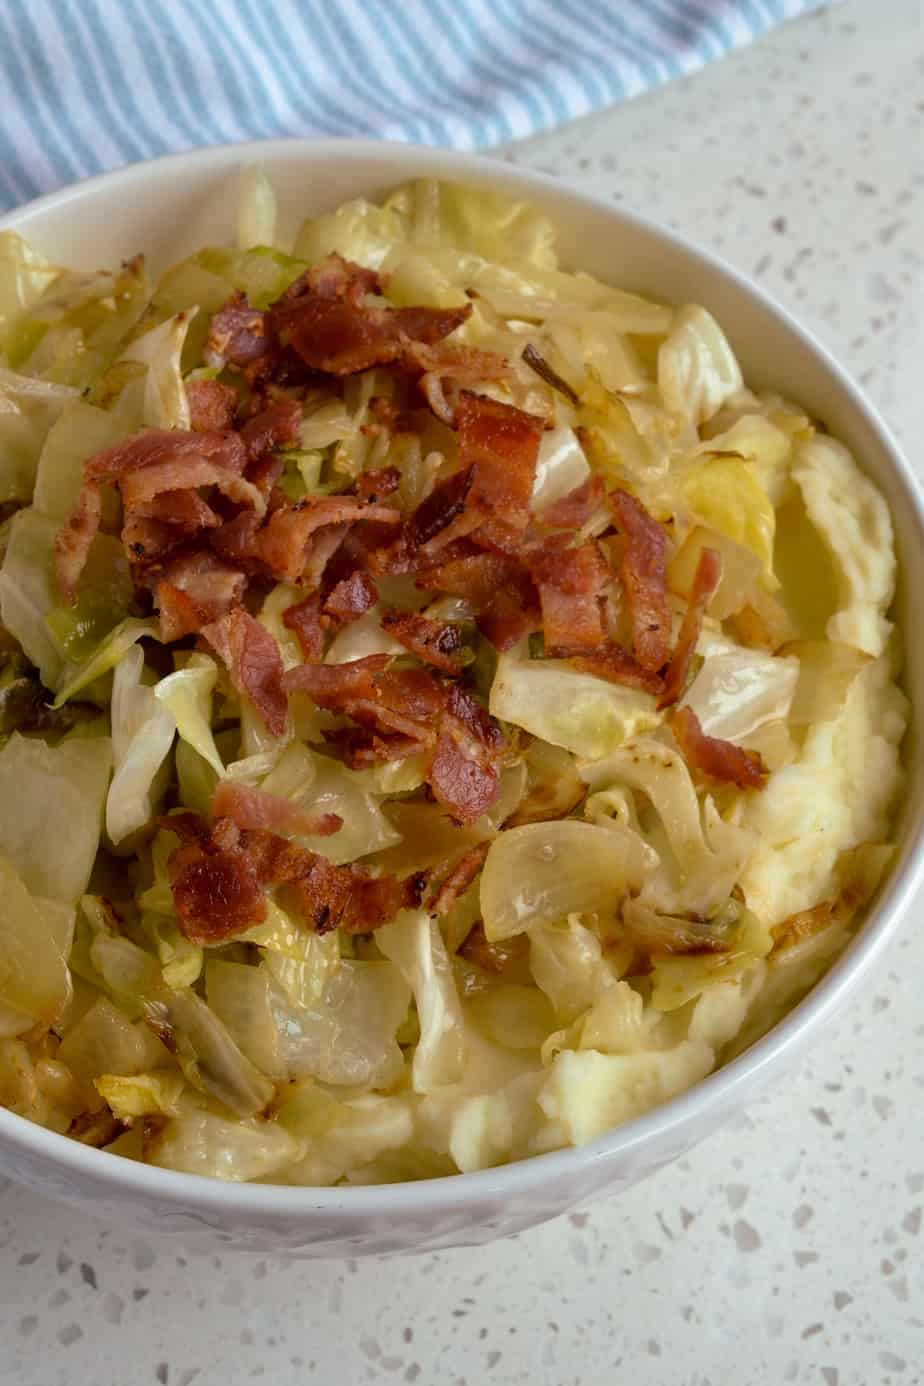 Irish Colcannon is made with mashed potatoes, fried cabbage, onions, crisp bacon and seasoned with salt and pepper.